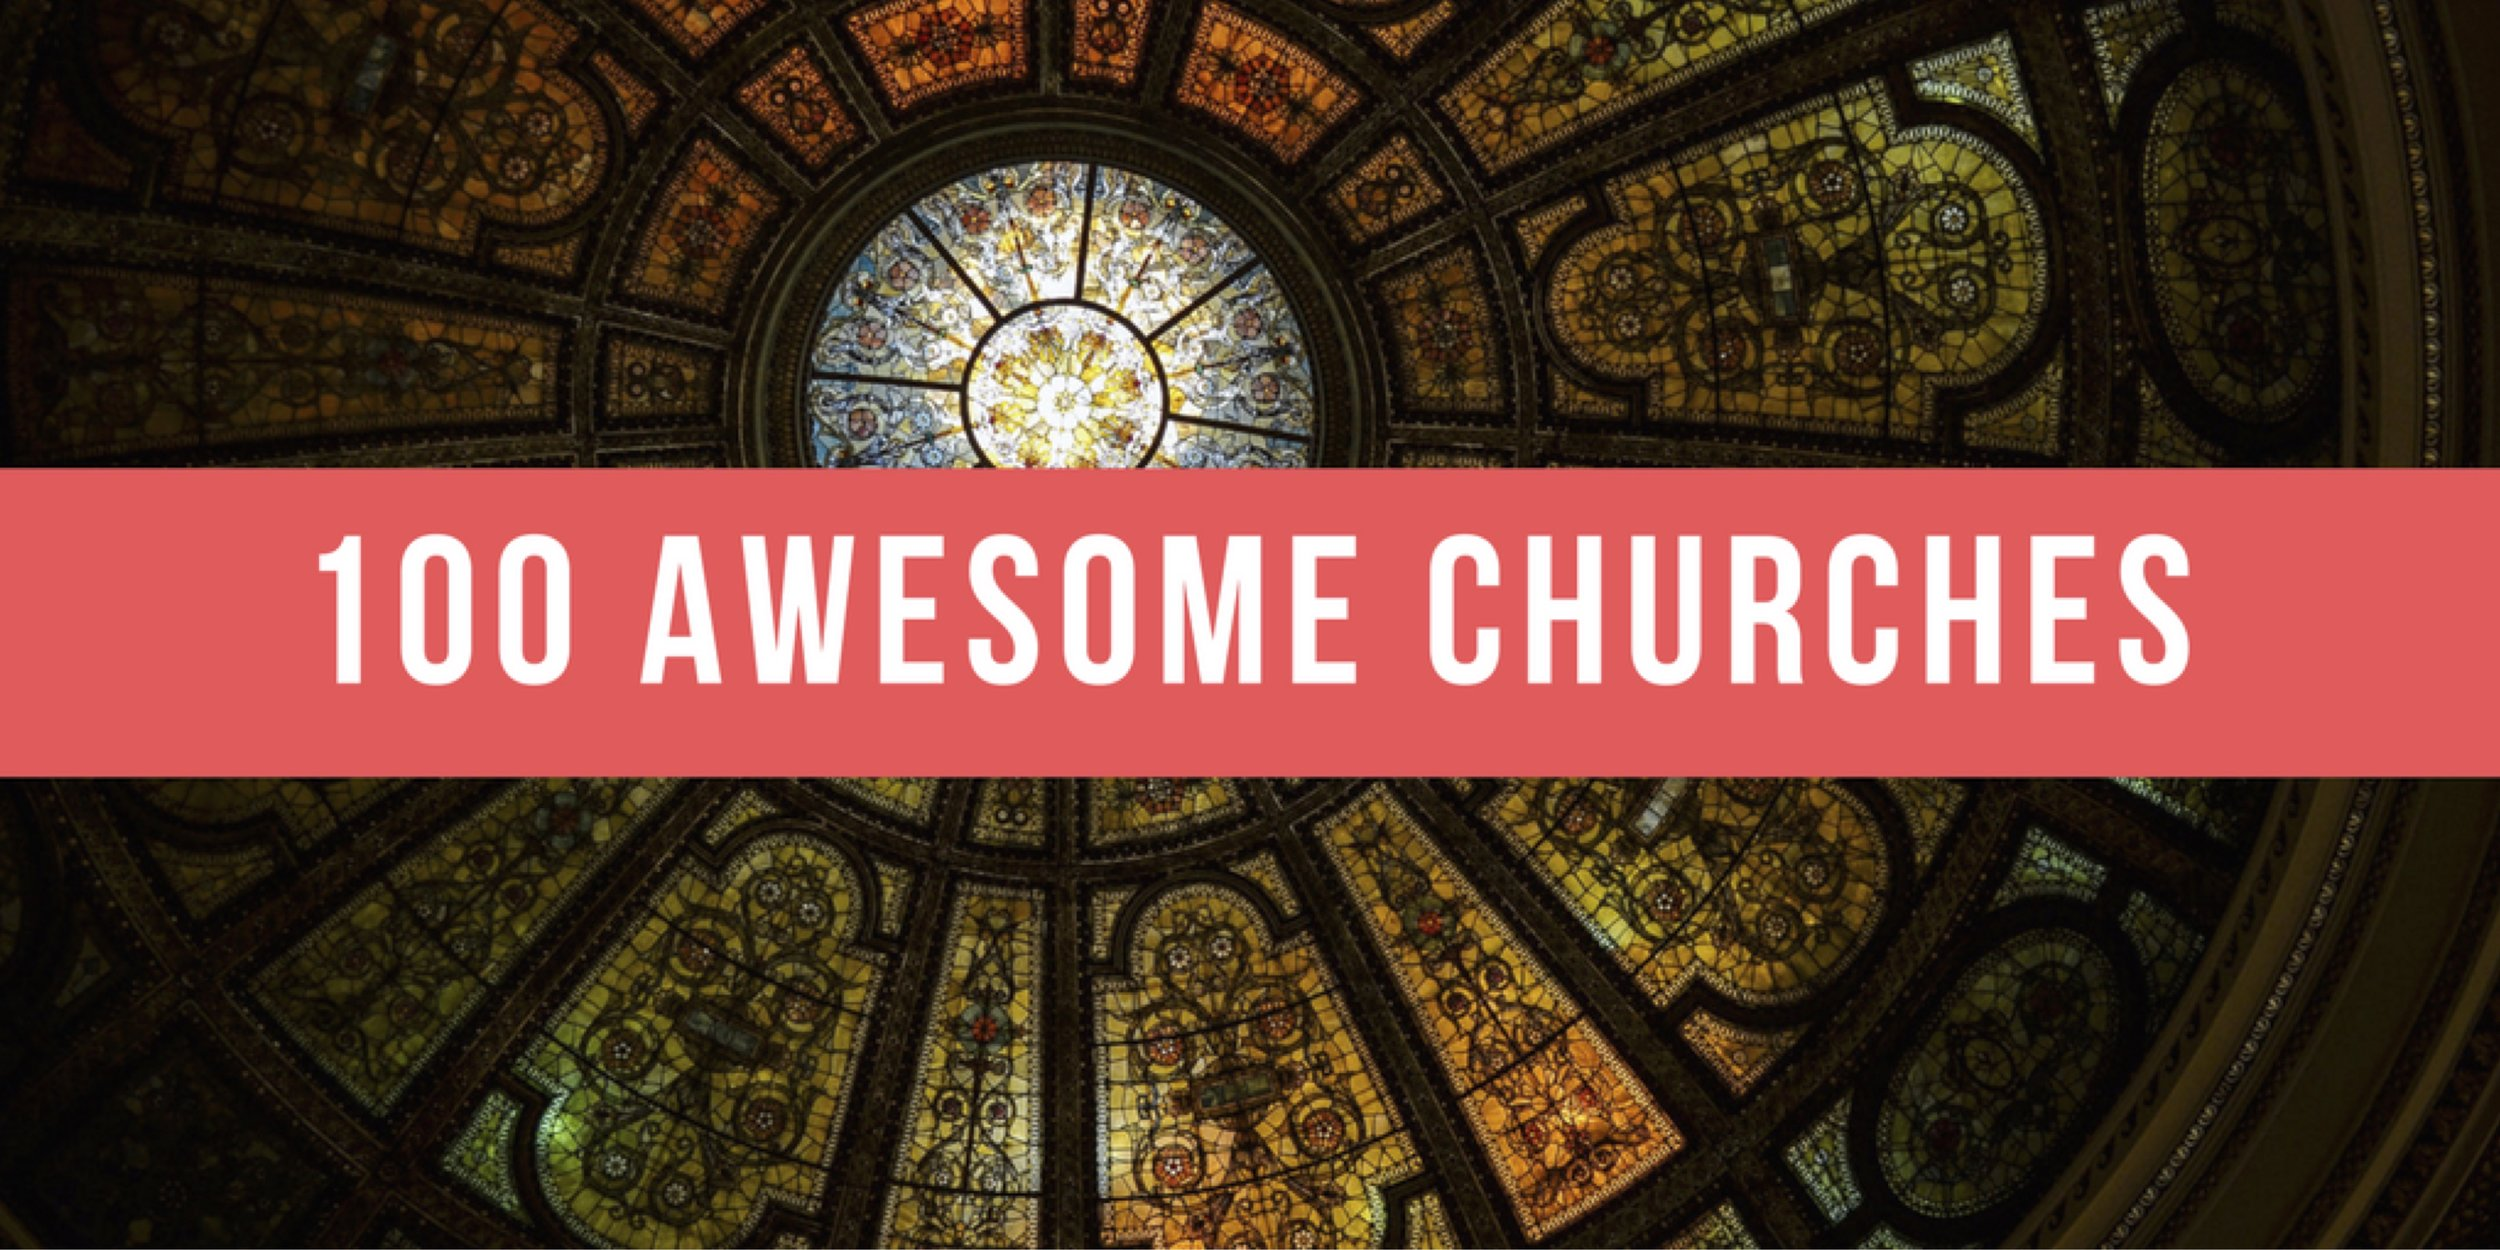 100 Awesome Churches graphic.jpg